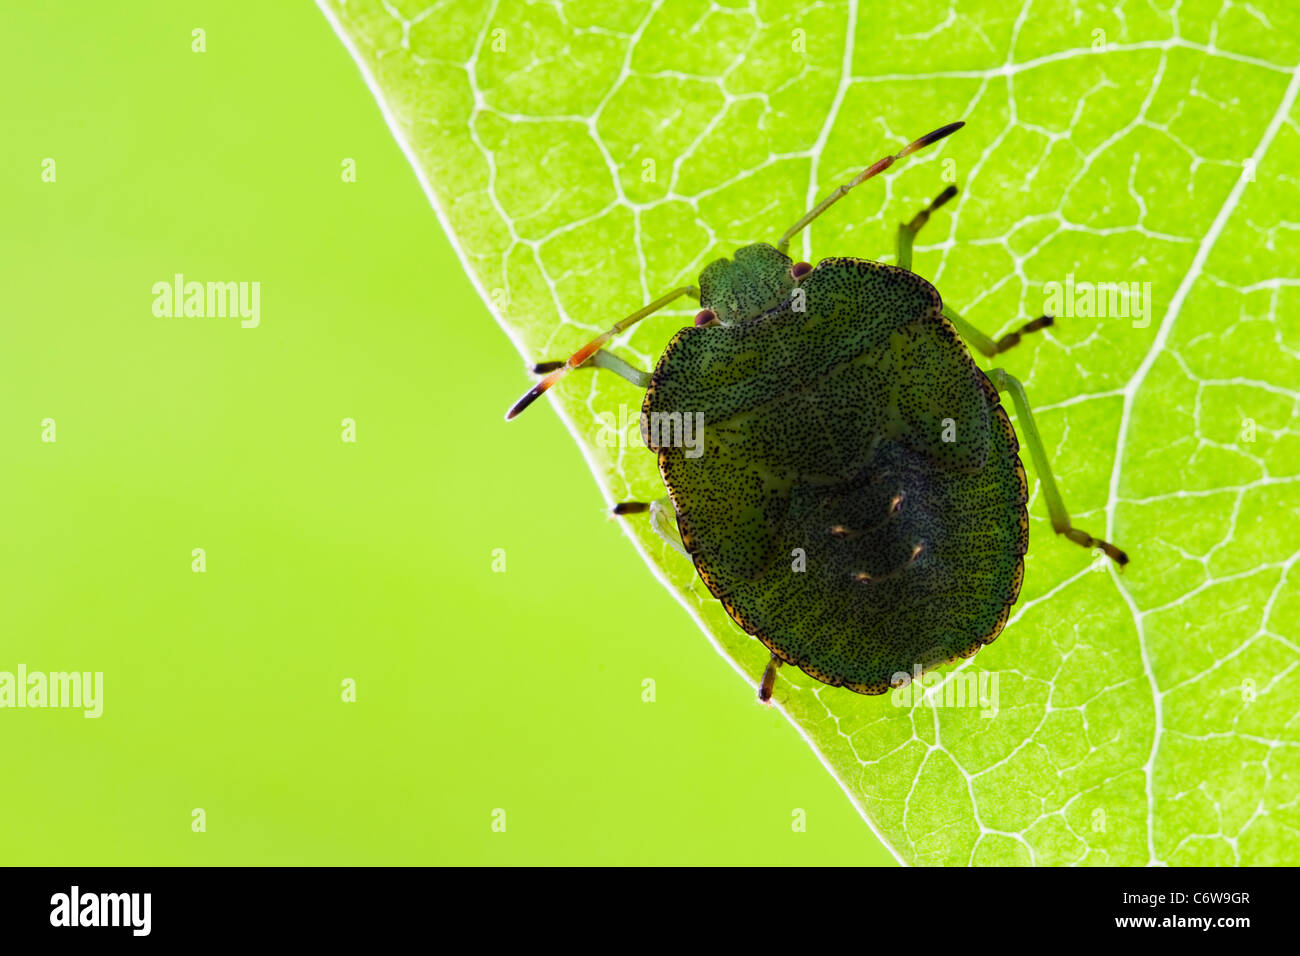 Green Shield Bug nymph resting on underside of a leaf - Stock Image